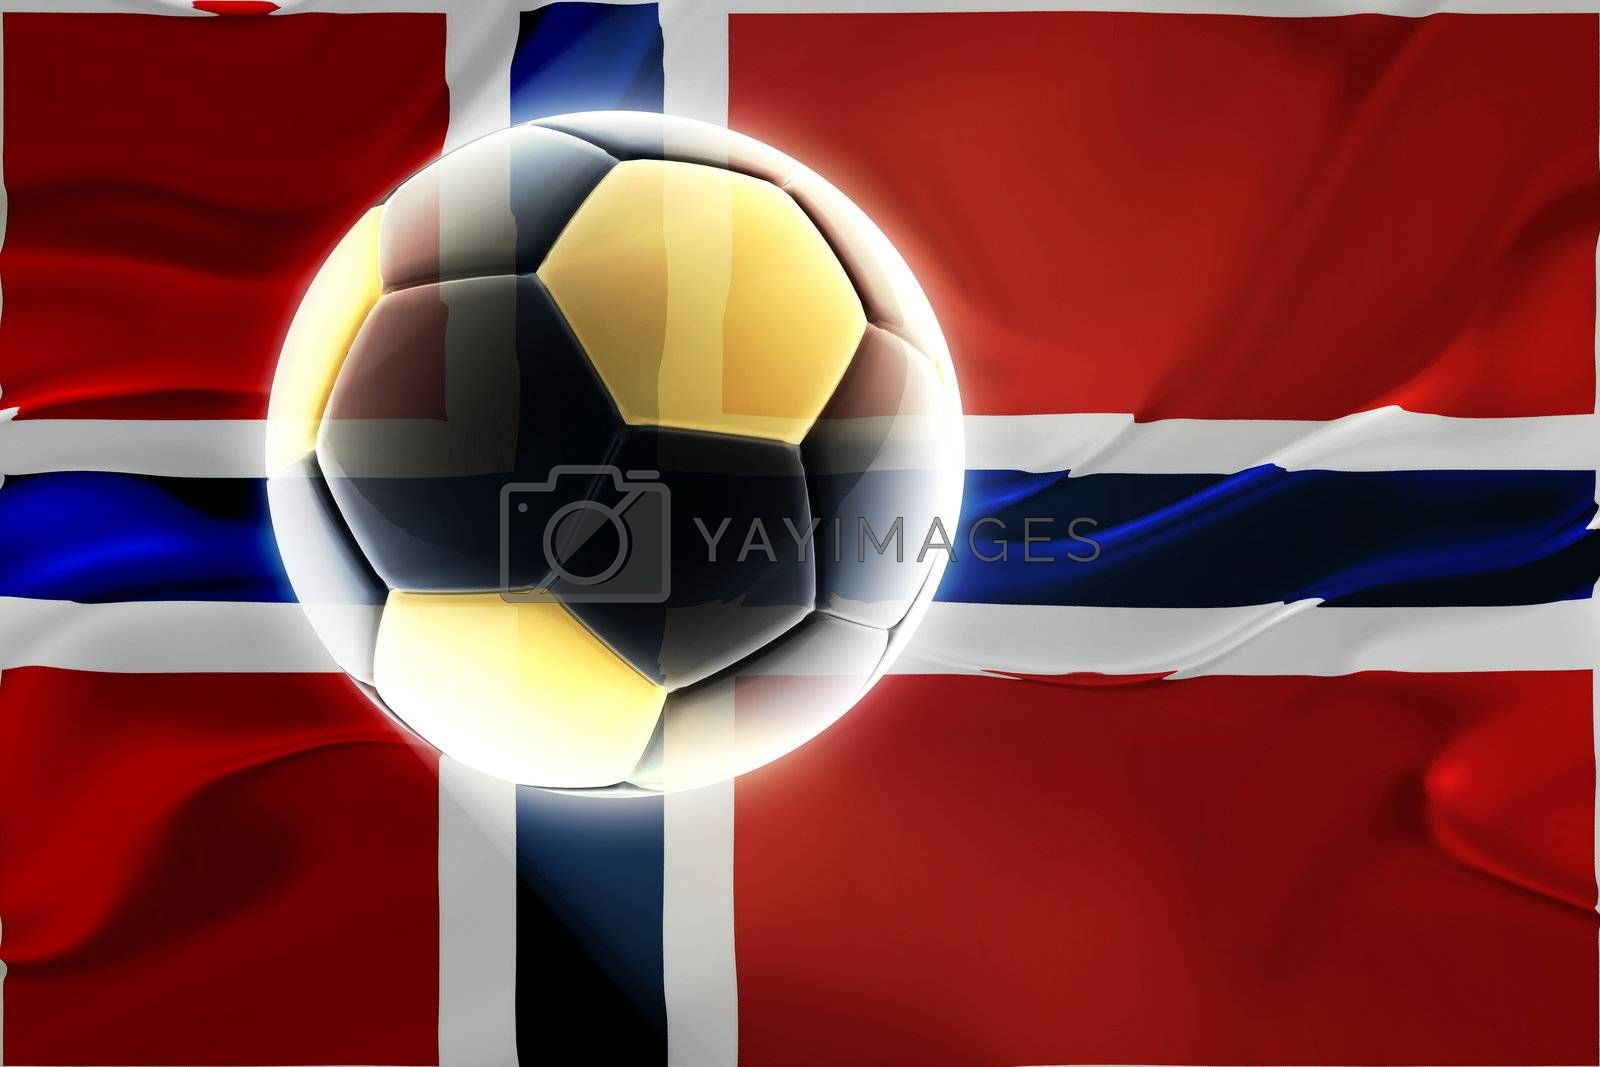 Flag of Norway, national country symbol illustration wavy fabric sports soccer football